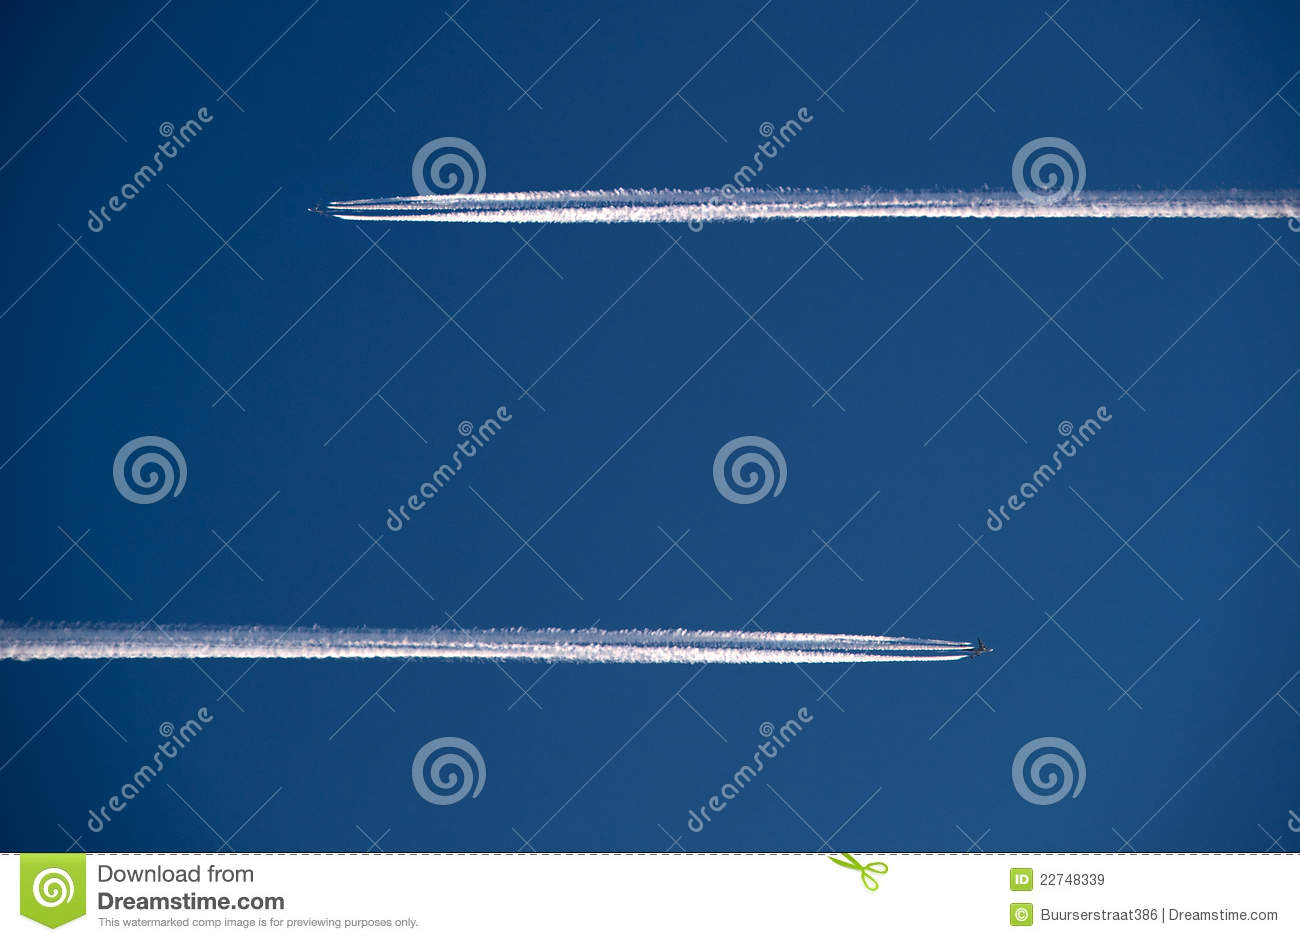 Two planes in the air